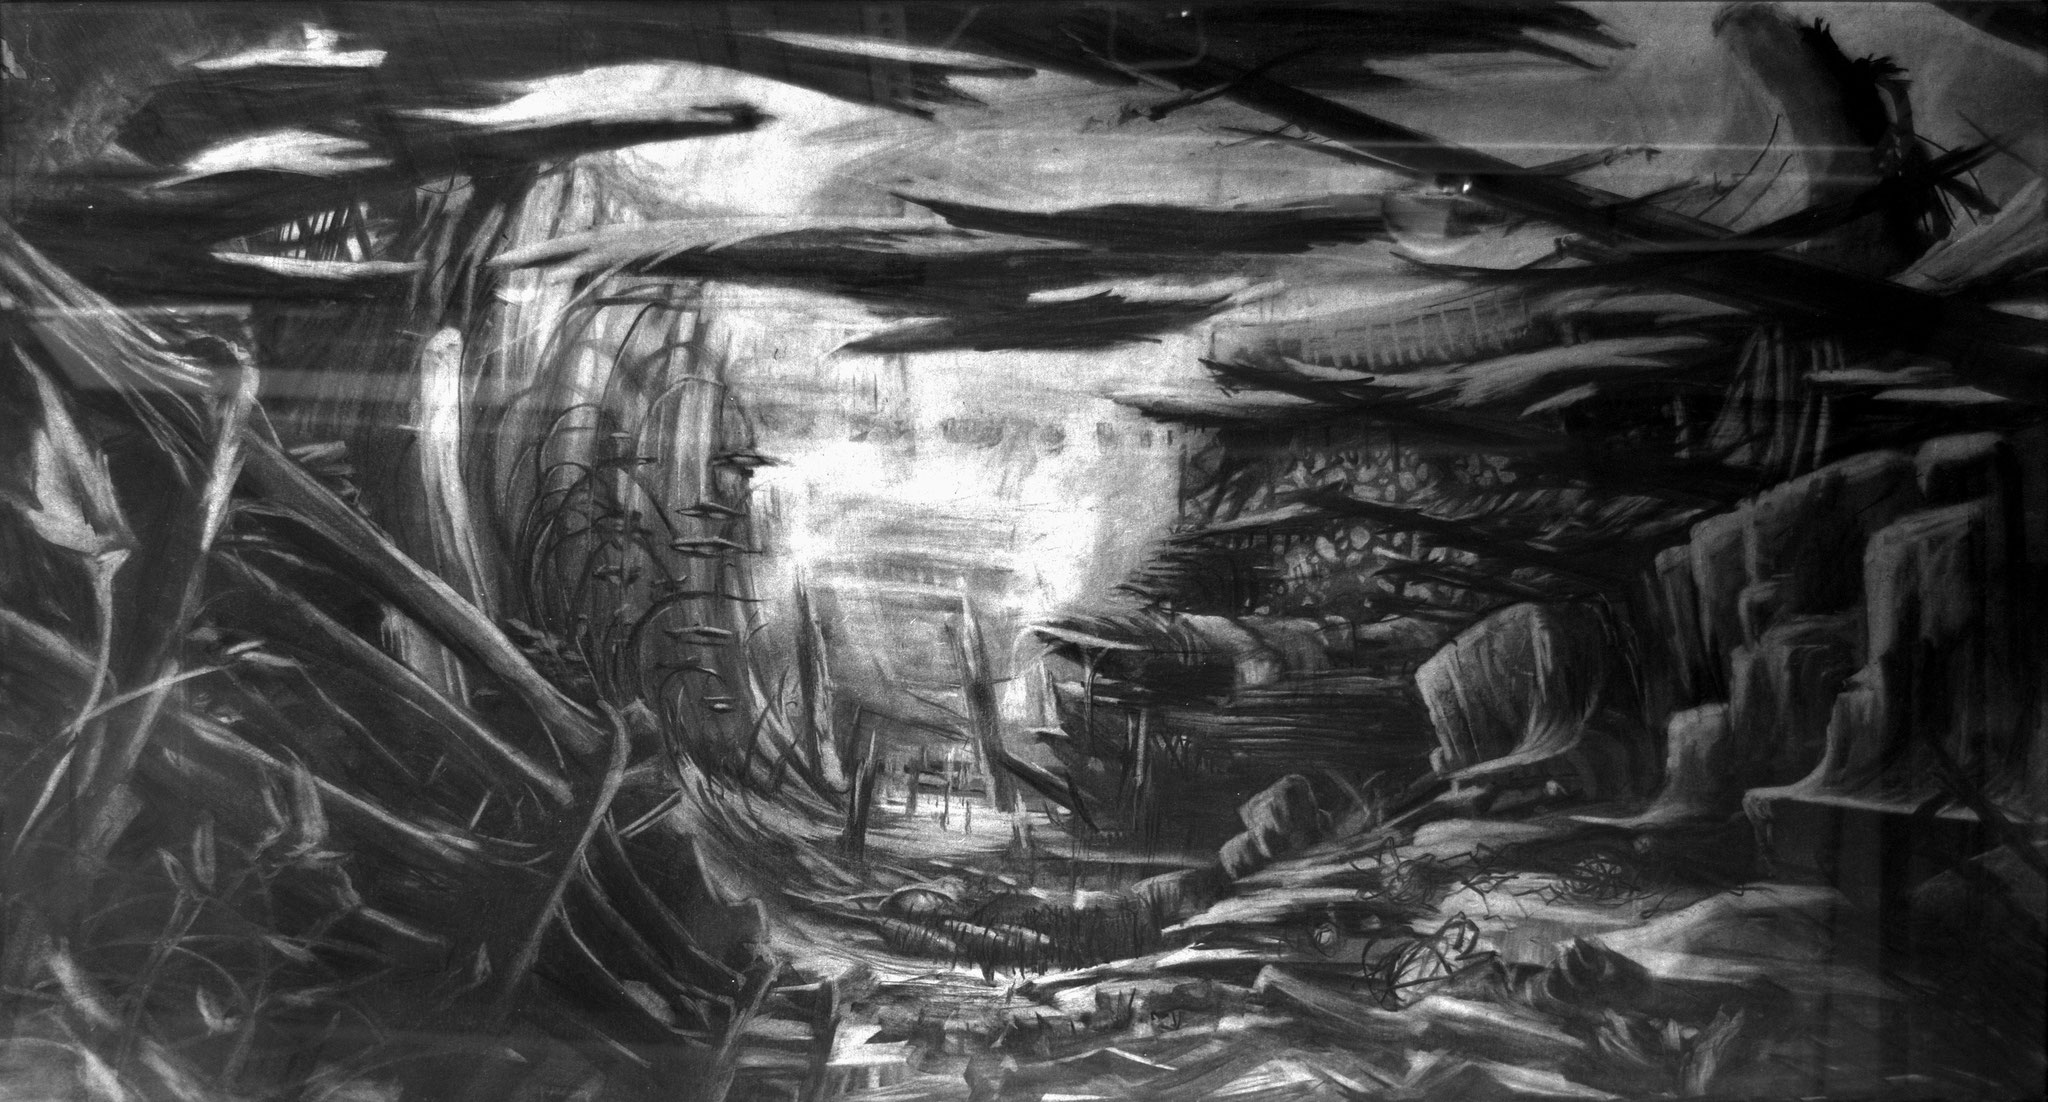 Safti (126 x 78 cm; charcoal on paper; fixative) AVAILABLE